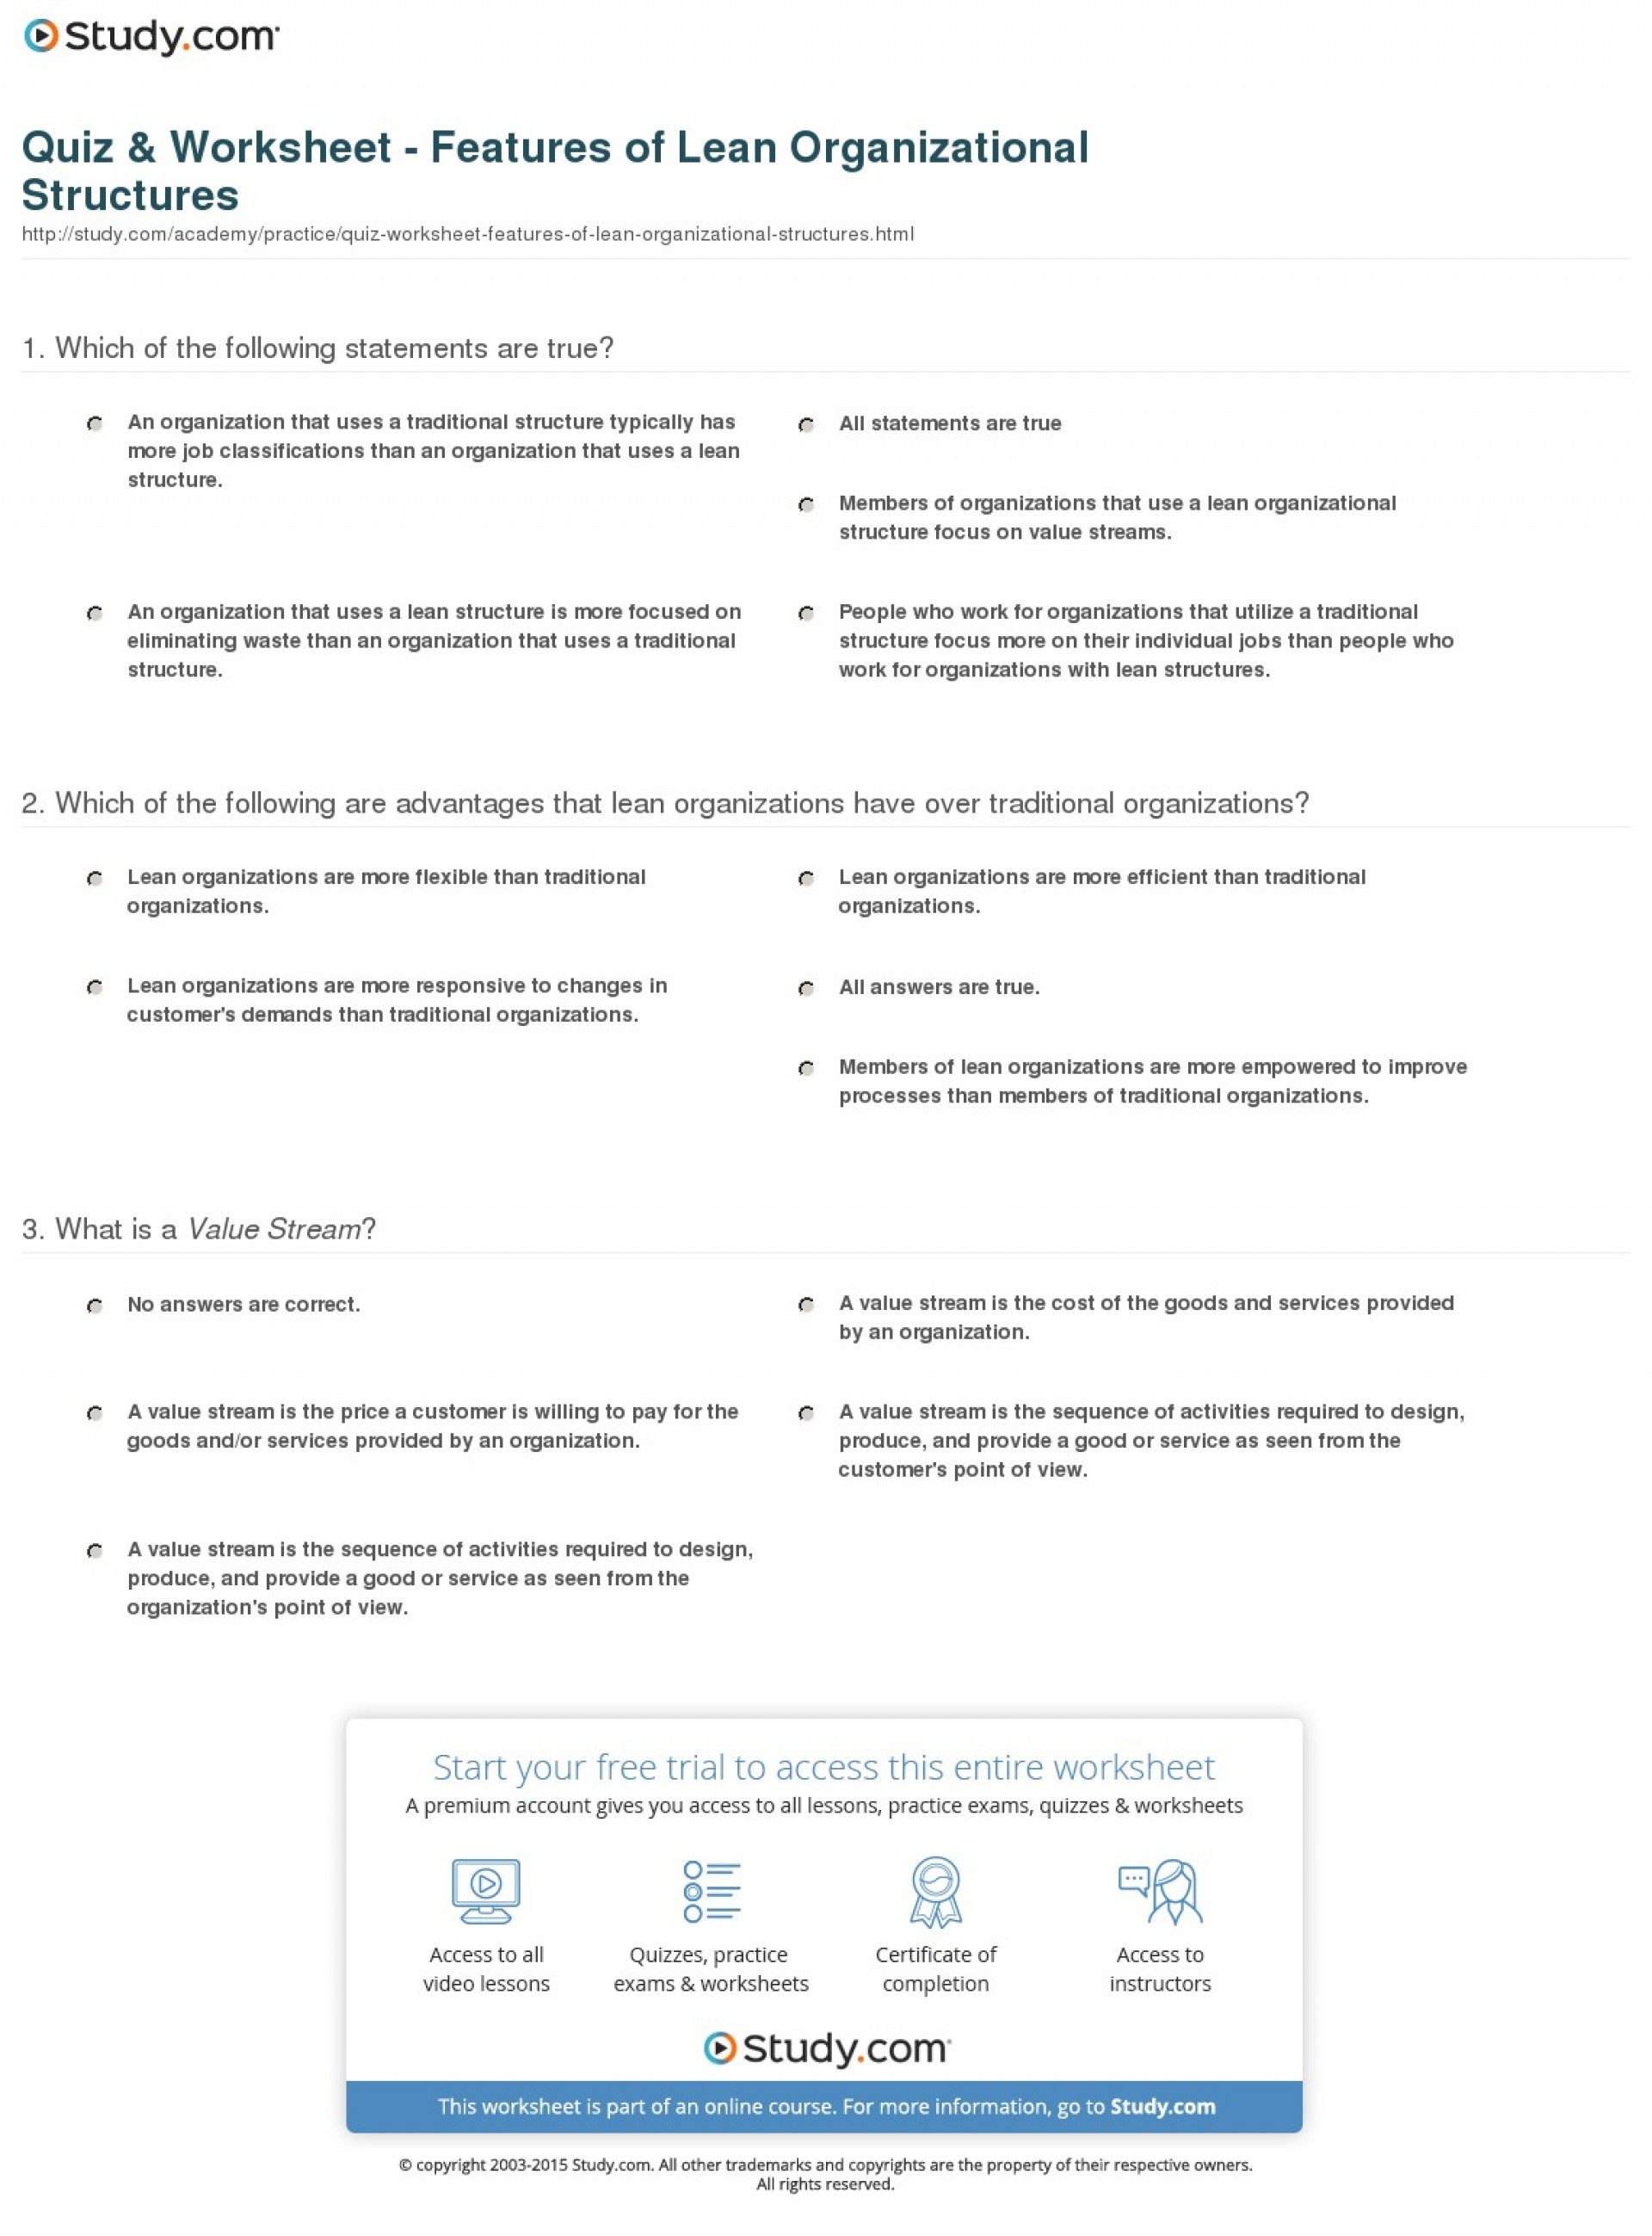 009 Essay Example Cause And Effect Of Overpopulation Quiz Worksheet Features Lean Organizational Remarkable 1920